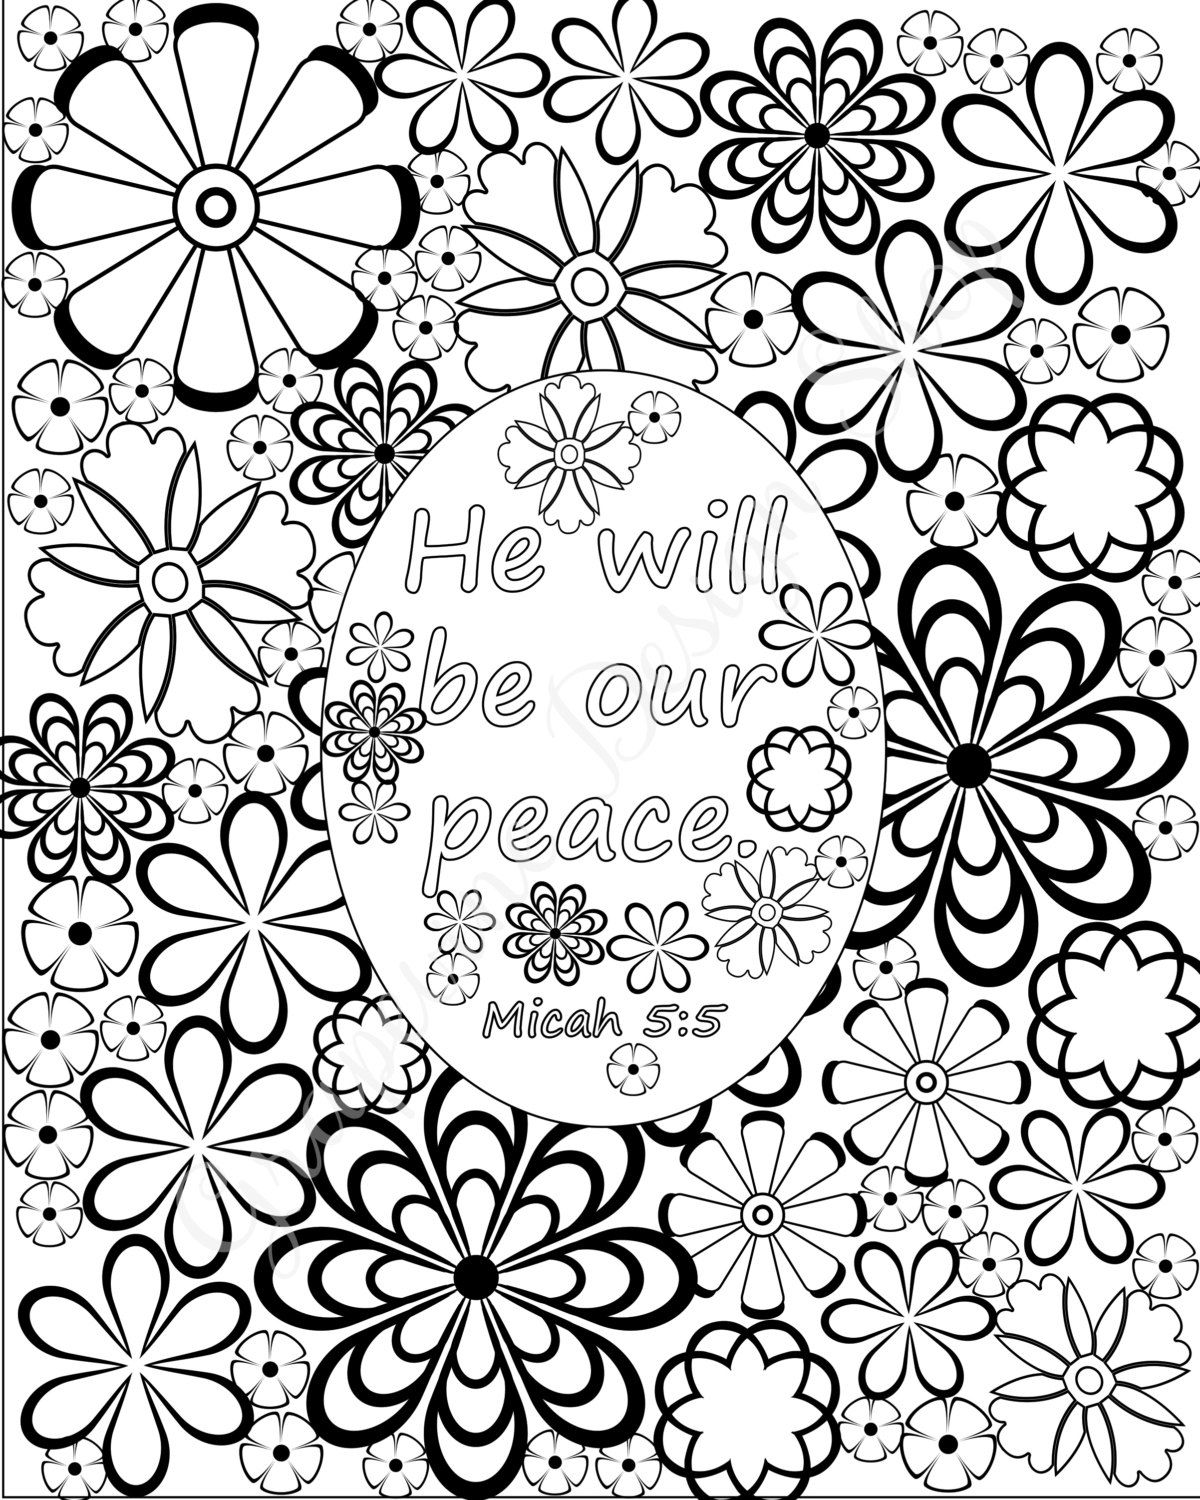 Coloring pages bible verses - Flower Coloring Pages Bible Verse Coloring By Grapevinedesignshop